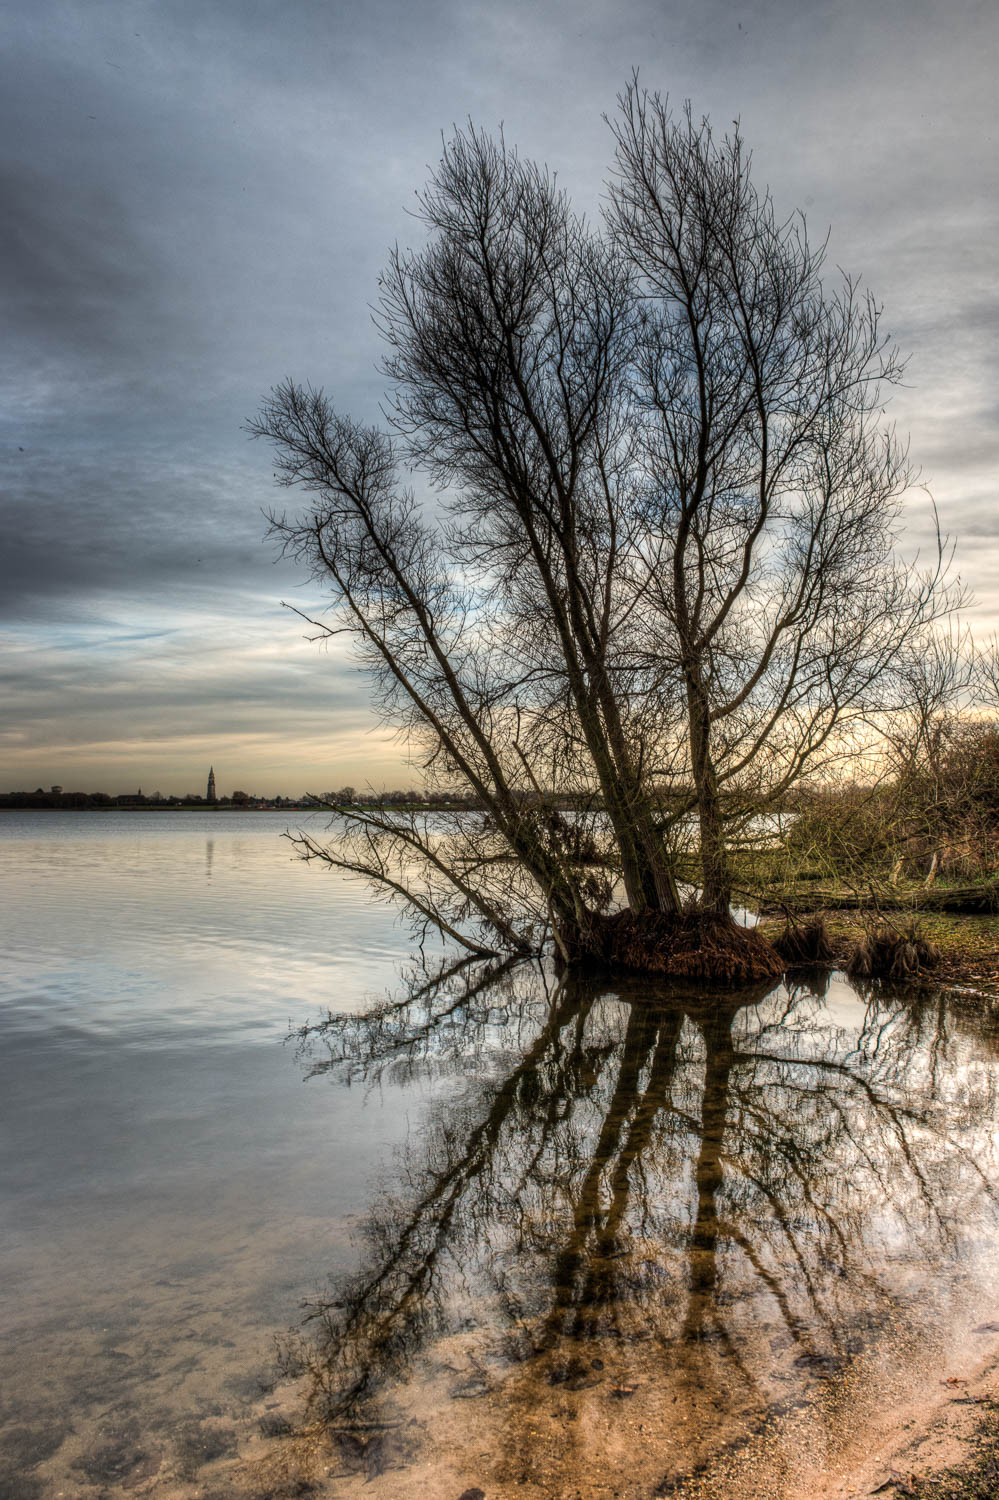 Alton Water Tree and Reflection